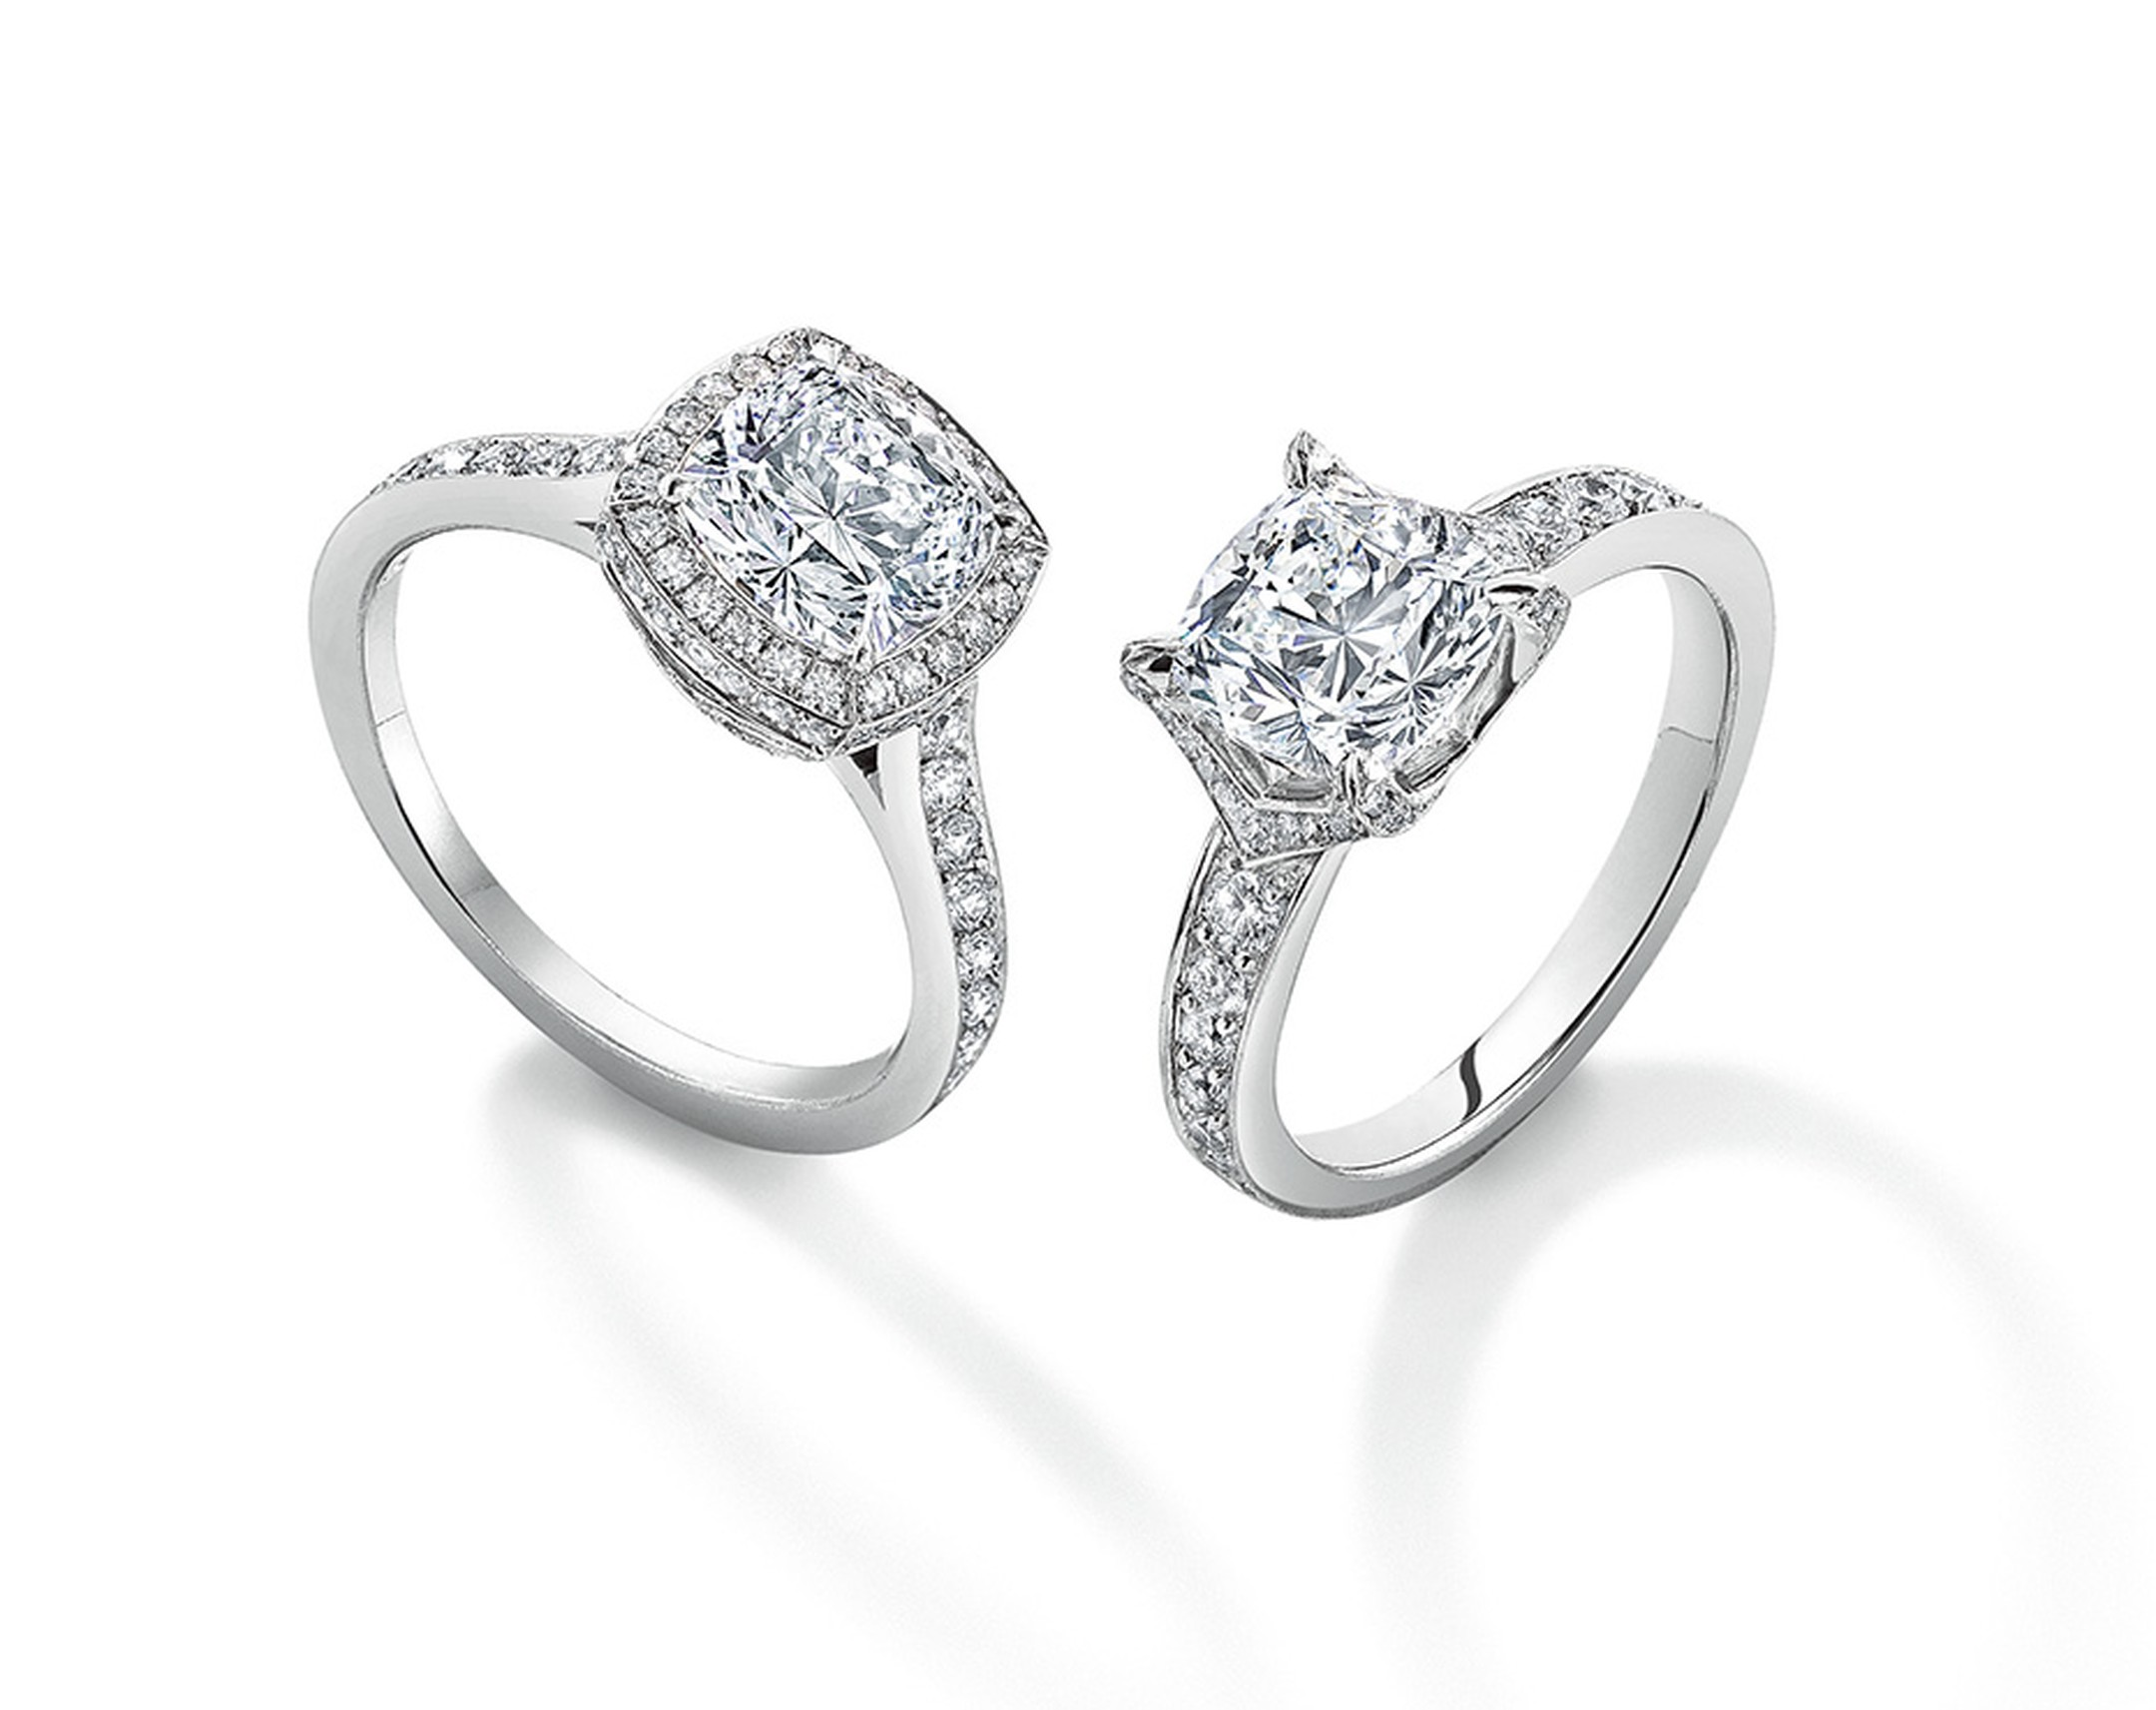 Asprey-cut diamond engagement rings with a micro-set diamond surround and pavé diamond V setting.